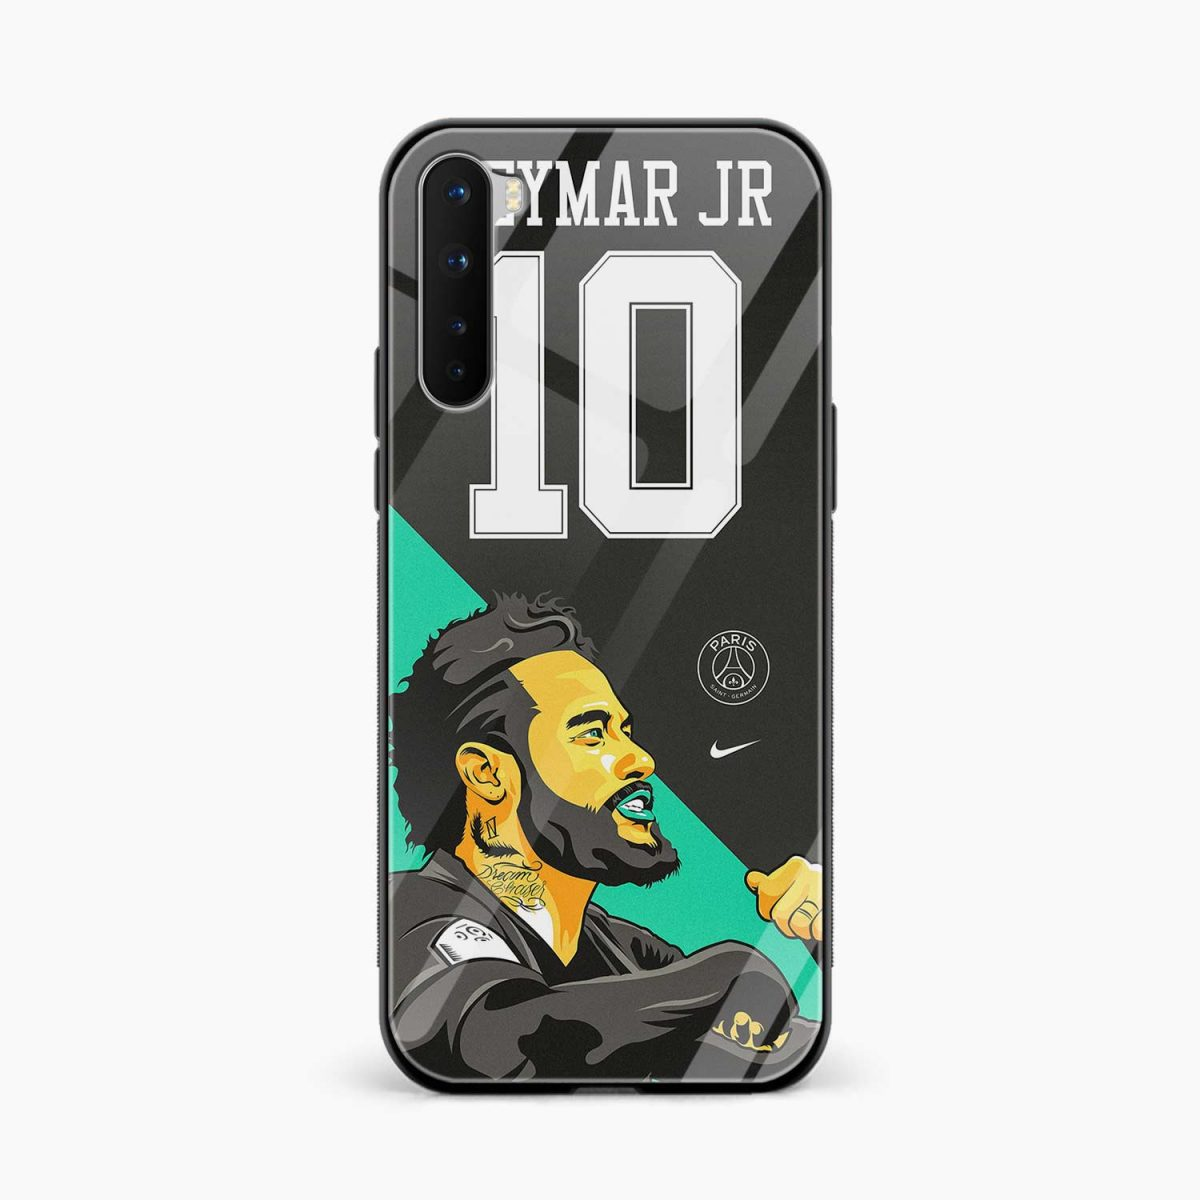 neymar jr 10 front view oneplus nord back cover 1